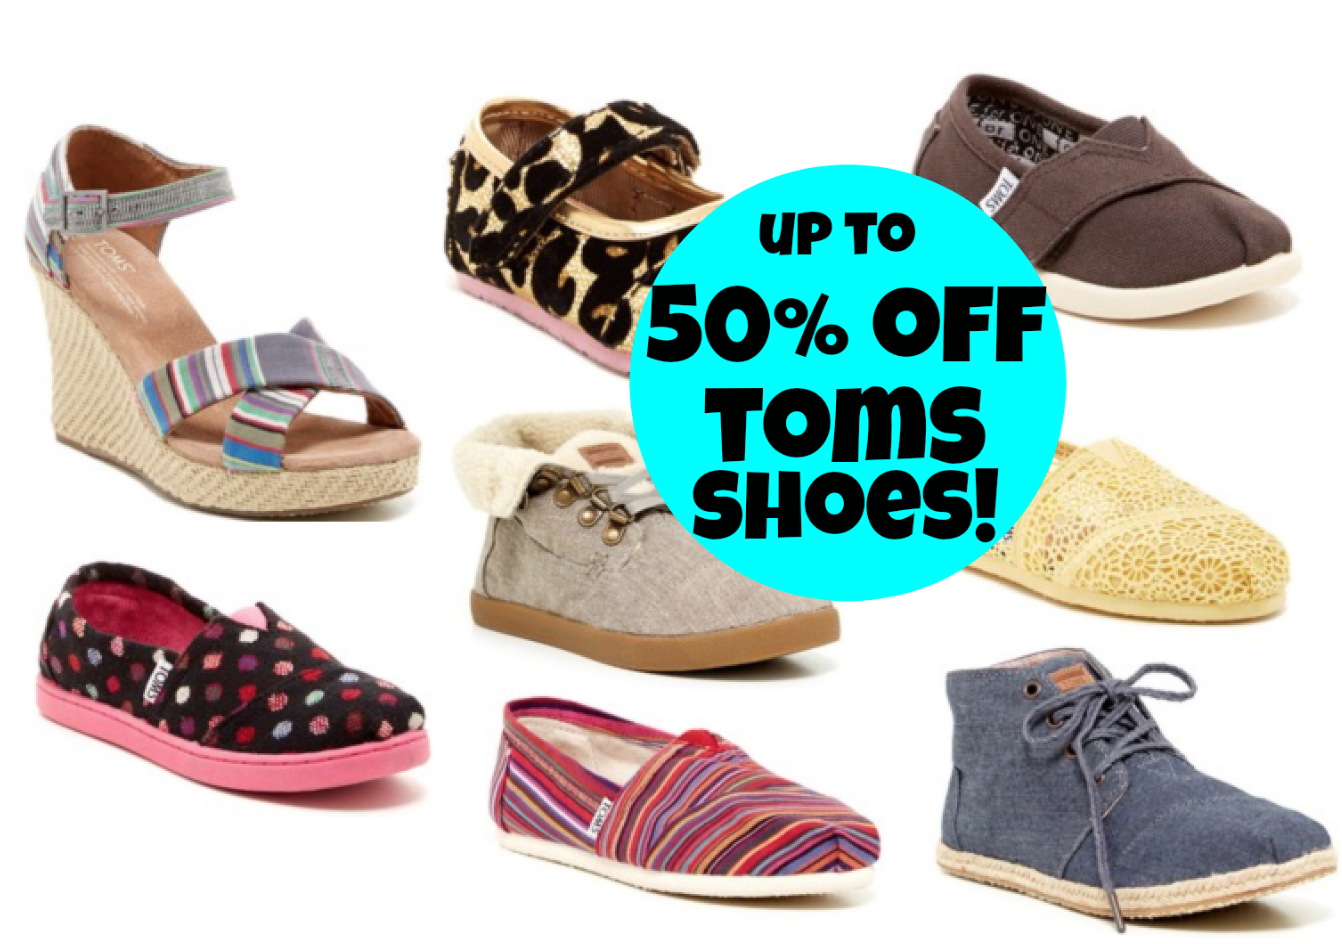 http://www.thebinderladies.com/2014/10/nordstromrack-up-to-50-off-toms-shoes.html#.VE6UYL7dtbw